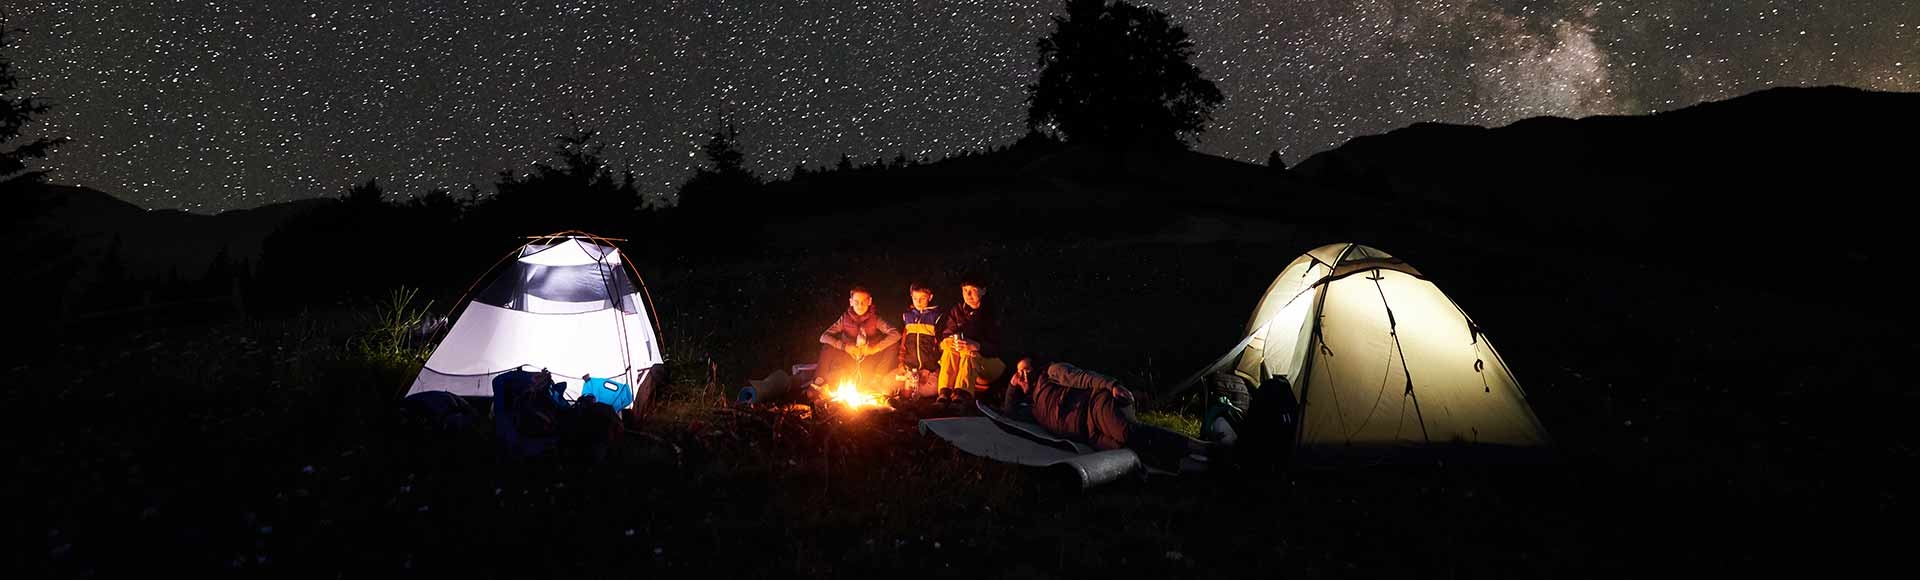 Family by the fire on a starry night